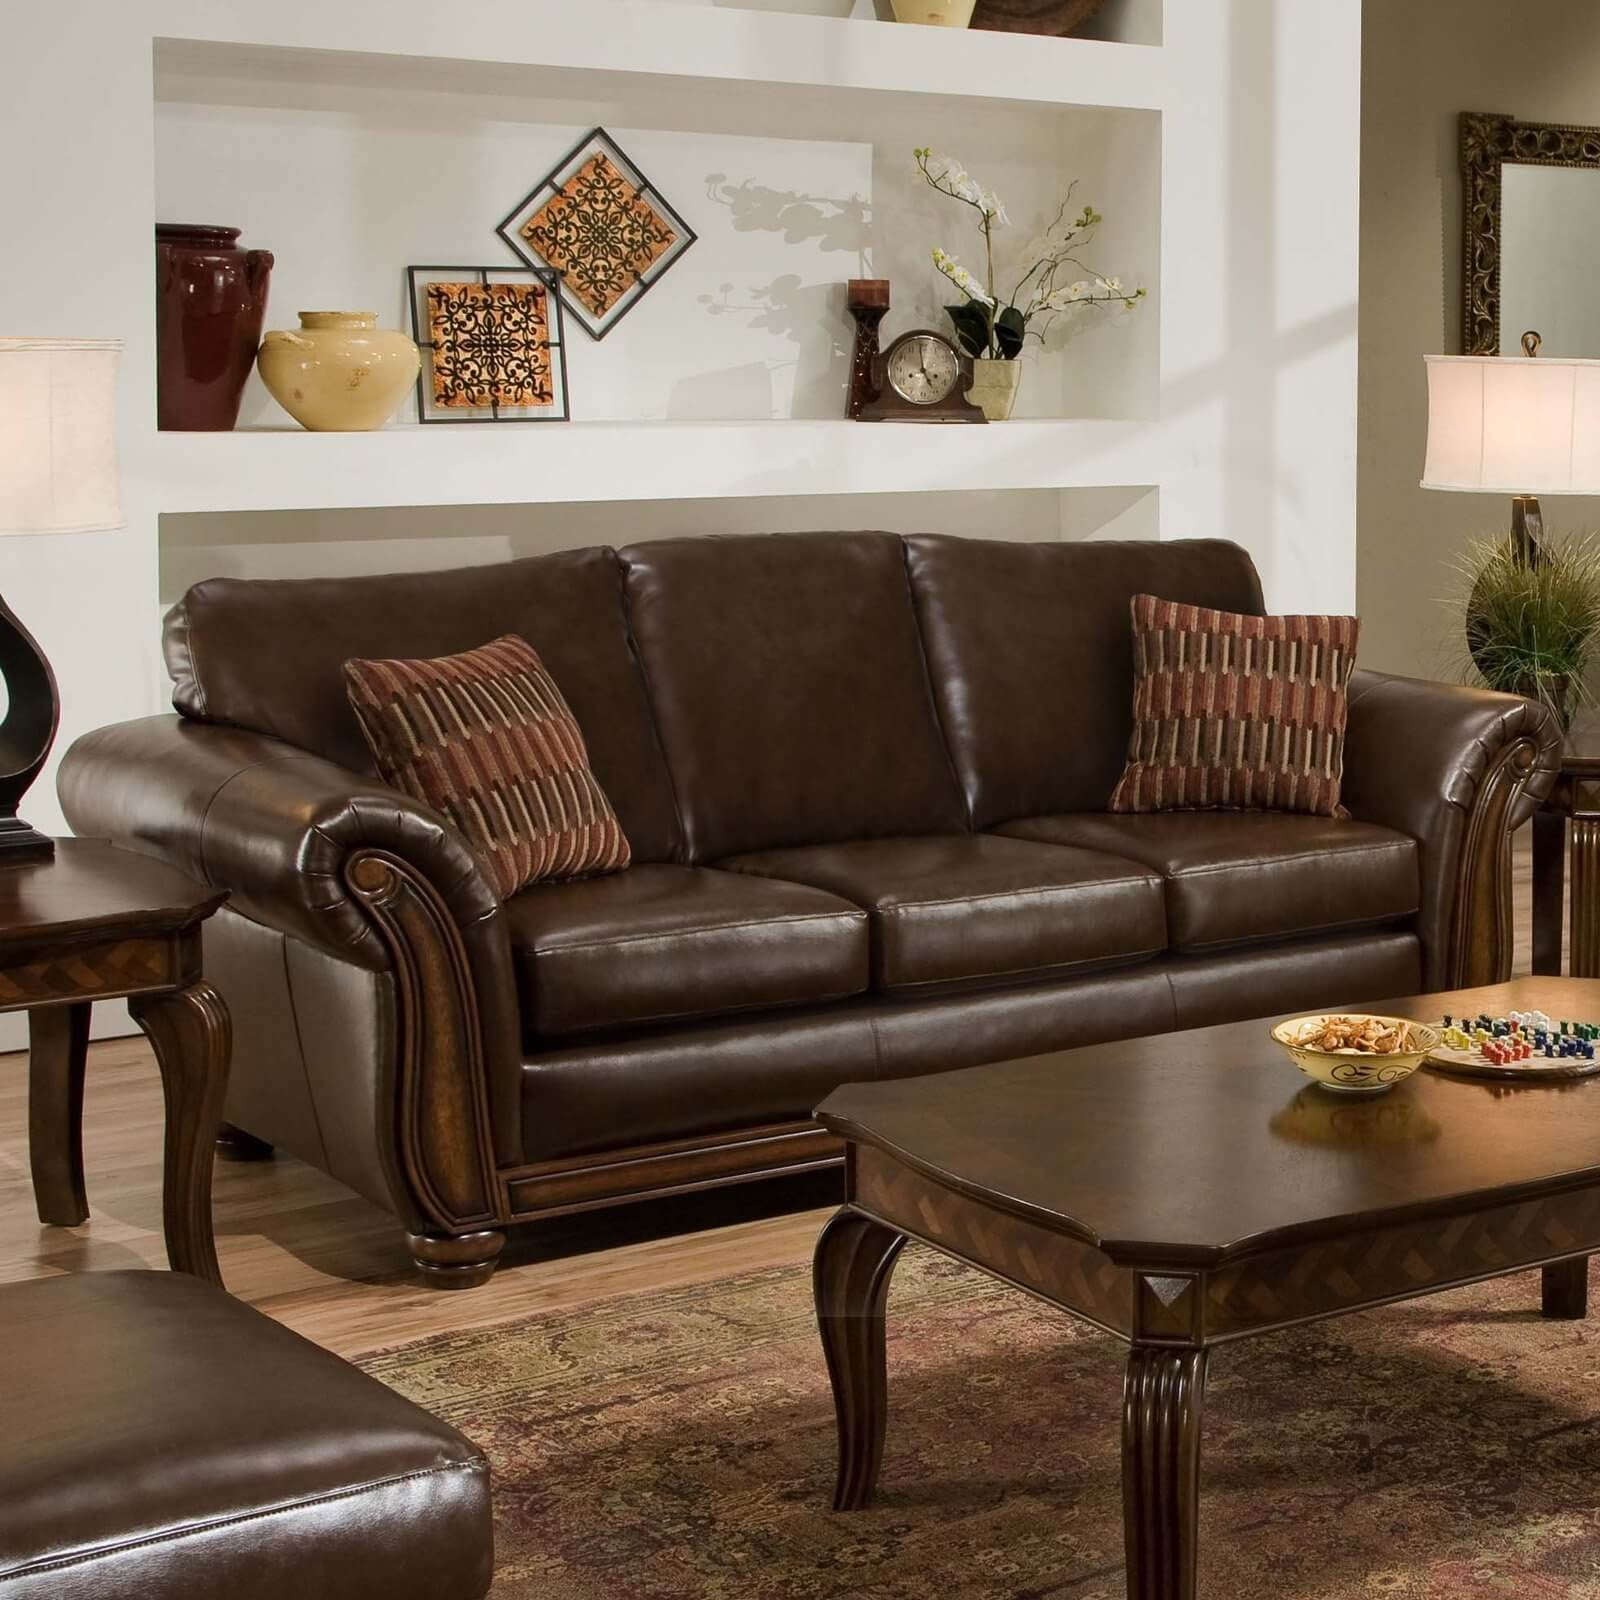 Comfortable Living Room Furniture 20 fortable Living Room sofas Many Styles